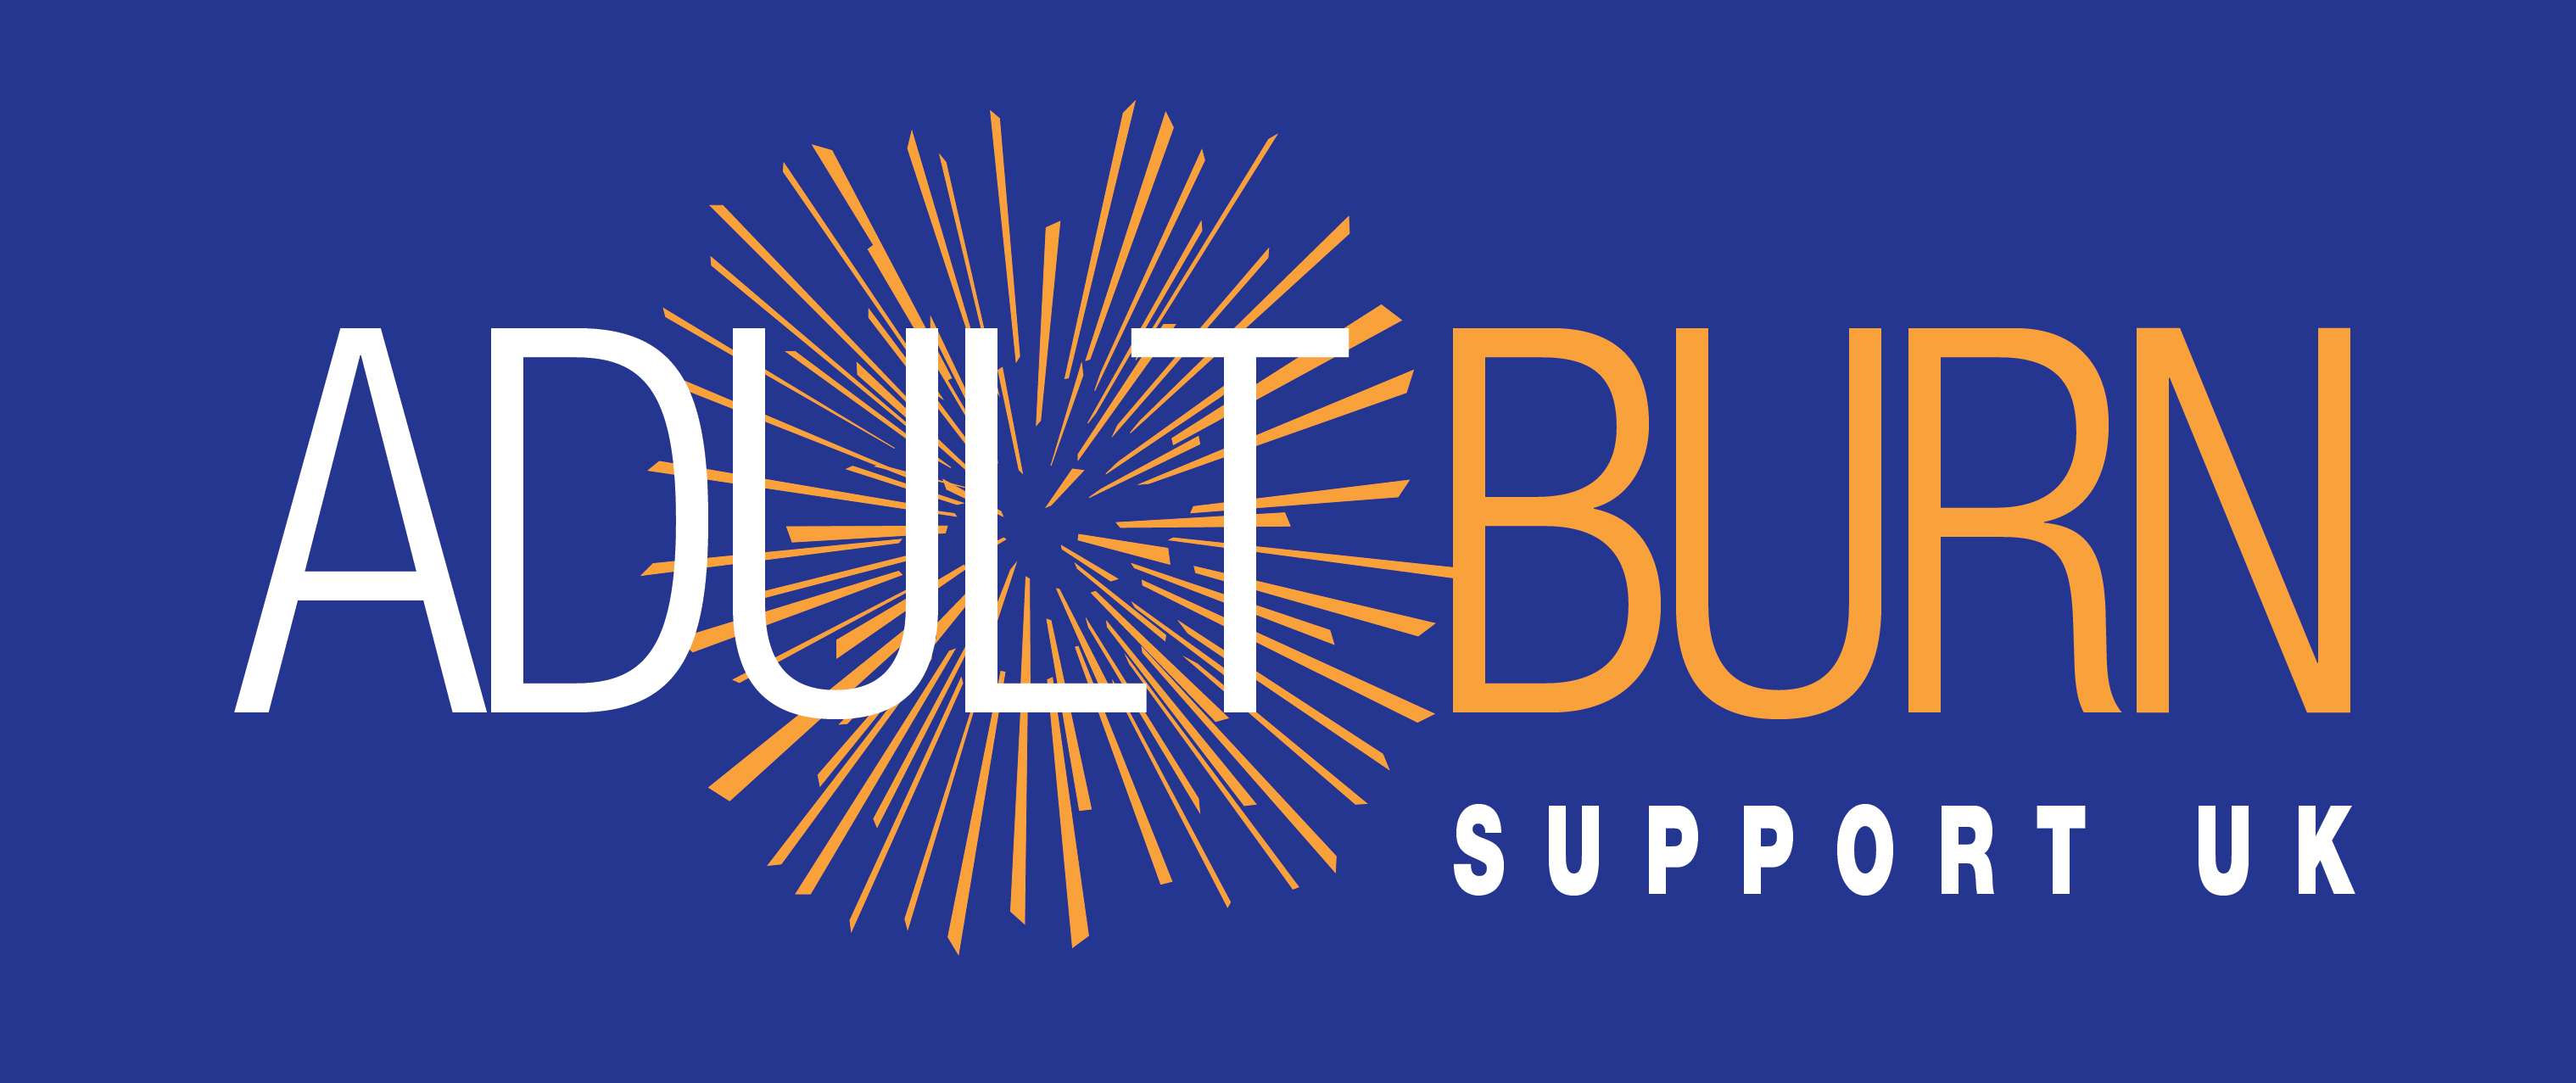 Adult Burn Support UK logo